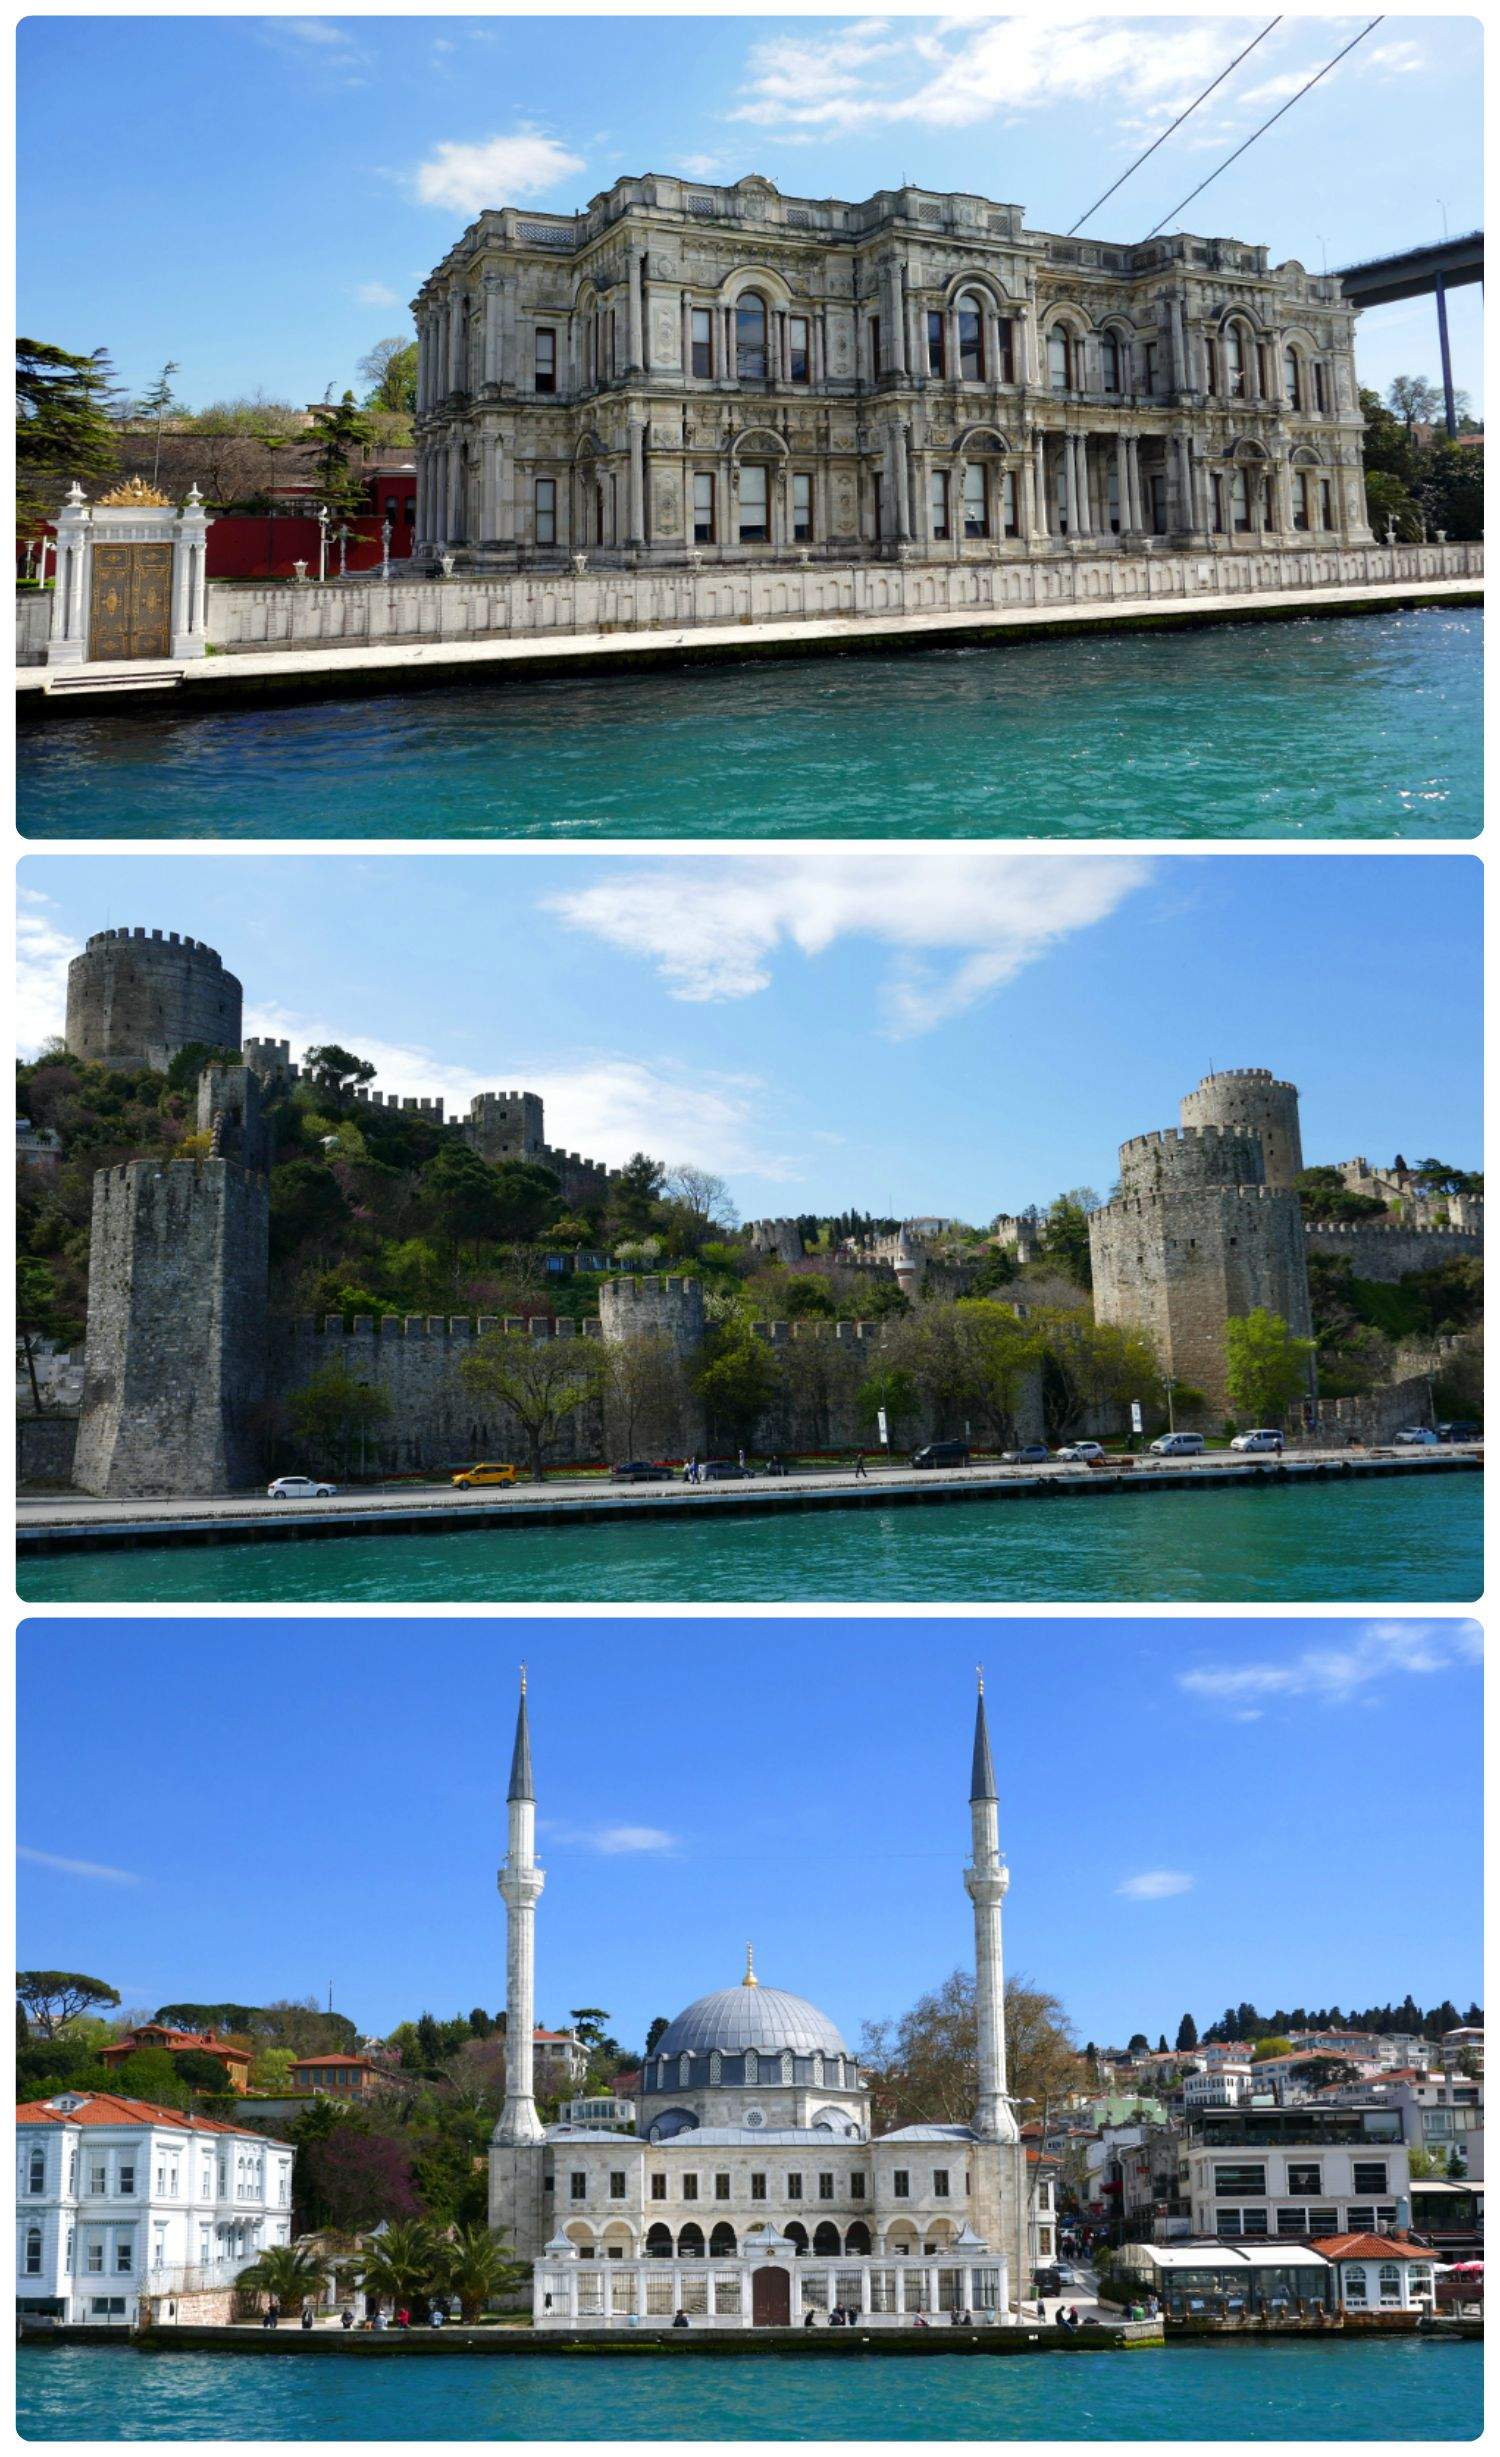 Top to bottom: Beylerbeyi Palace, Rumeli Fortress, Beylerbeyi Mosque.